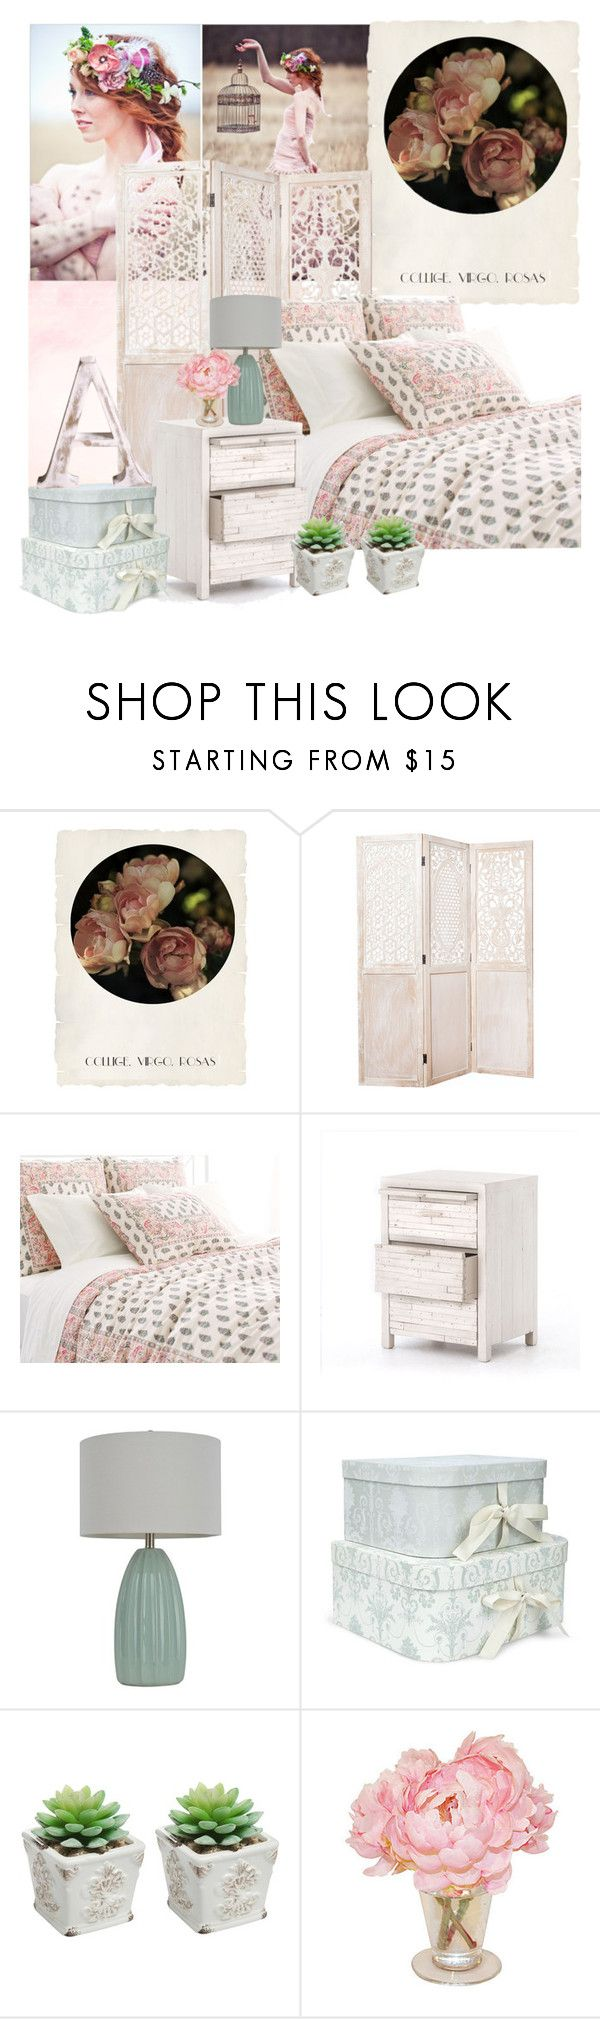 """roses"" by by-jwp ❤ liked on Polyvore featuring interior, interiors, interior design, home, home decor, interior decorating, Shabby Chic, Abigails, Pine Cone Hill and Décor Therapy"